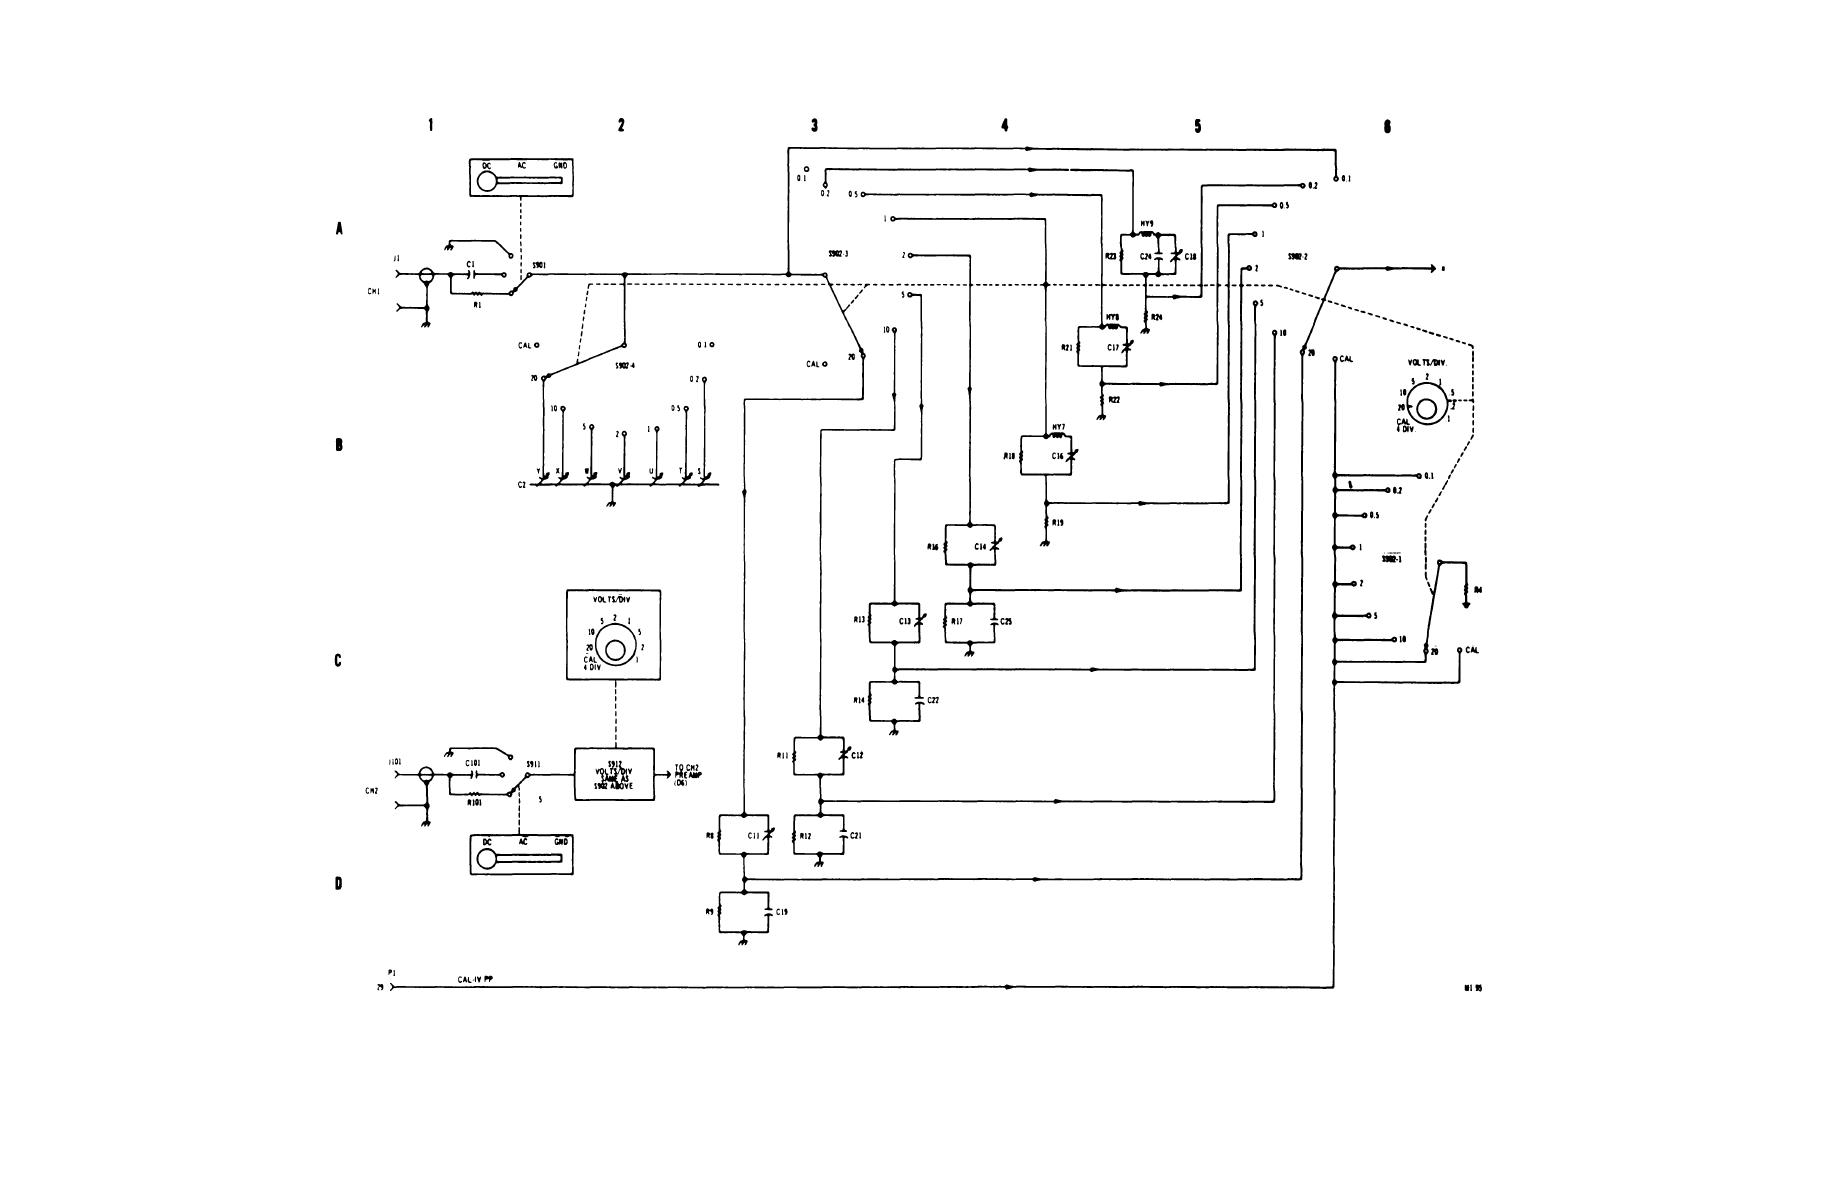 Figure 4 4 1 Dual Trace Plug In Type 79 02a Functional Schematic Sheet 2 Of 4